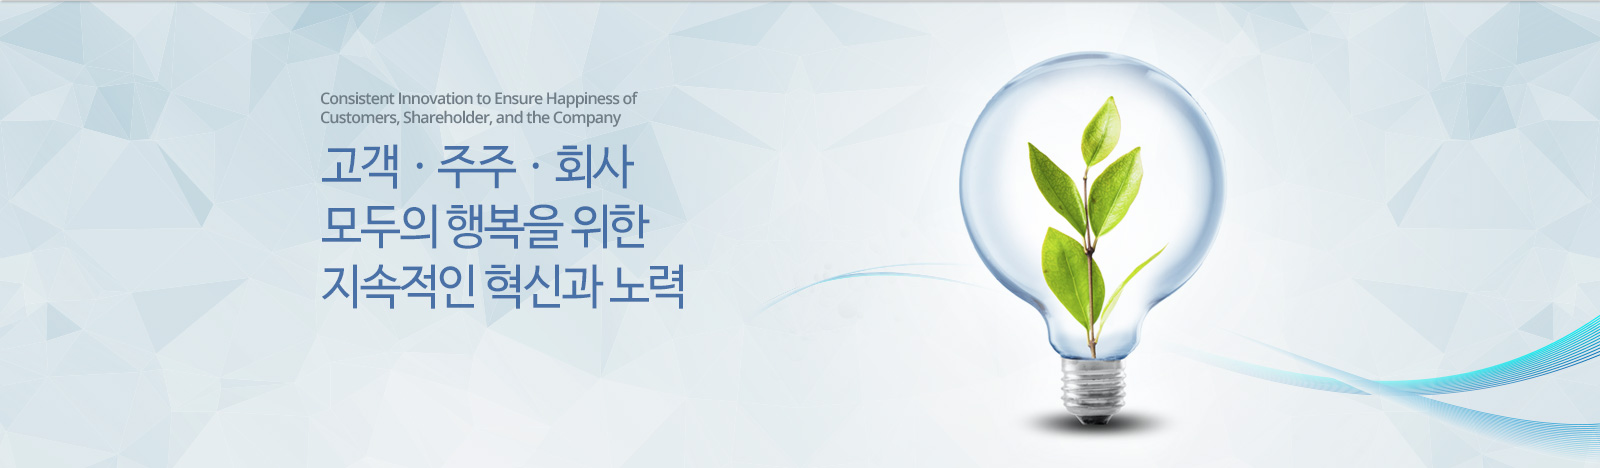 Consistent Innovation to Ensure Happiness of Customers, Shareholder, and the Company, 고객·주주·회사 모두의 행복을 위한 지속적인 혁신과 노력